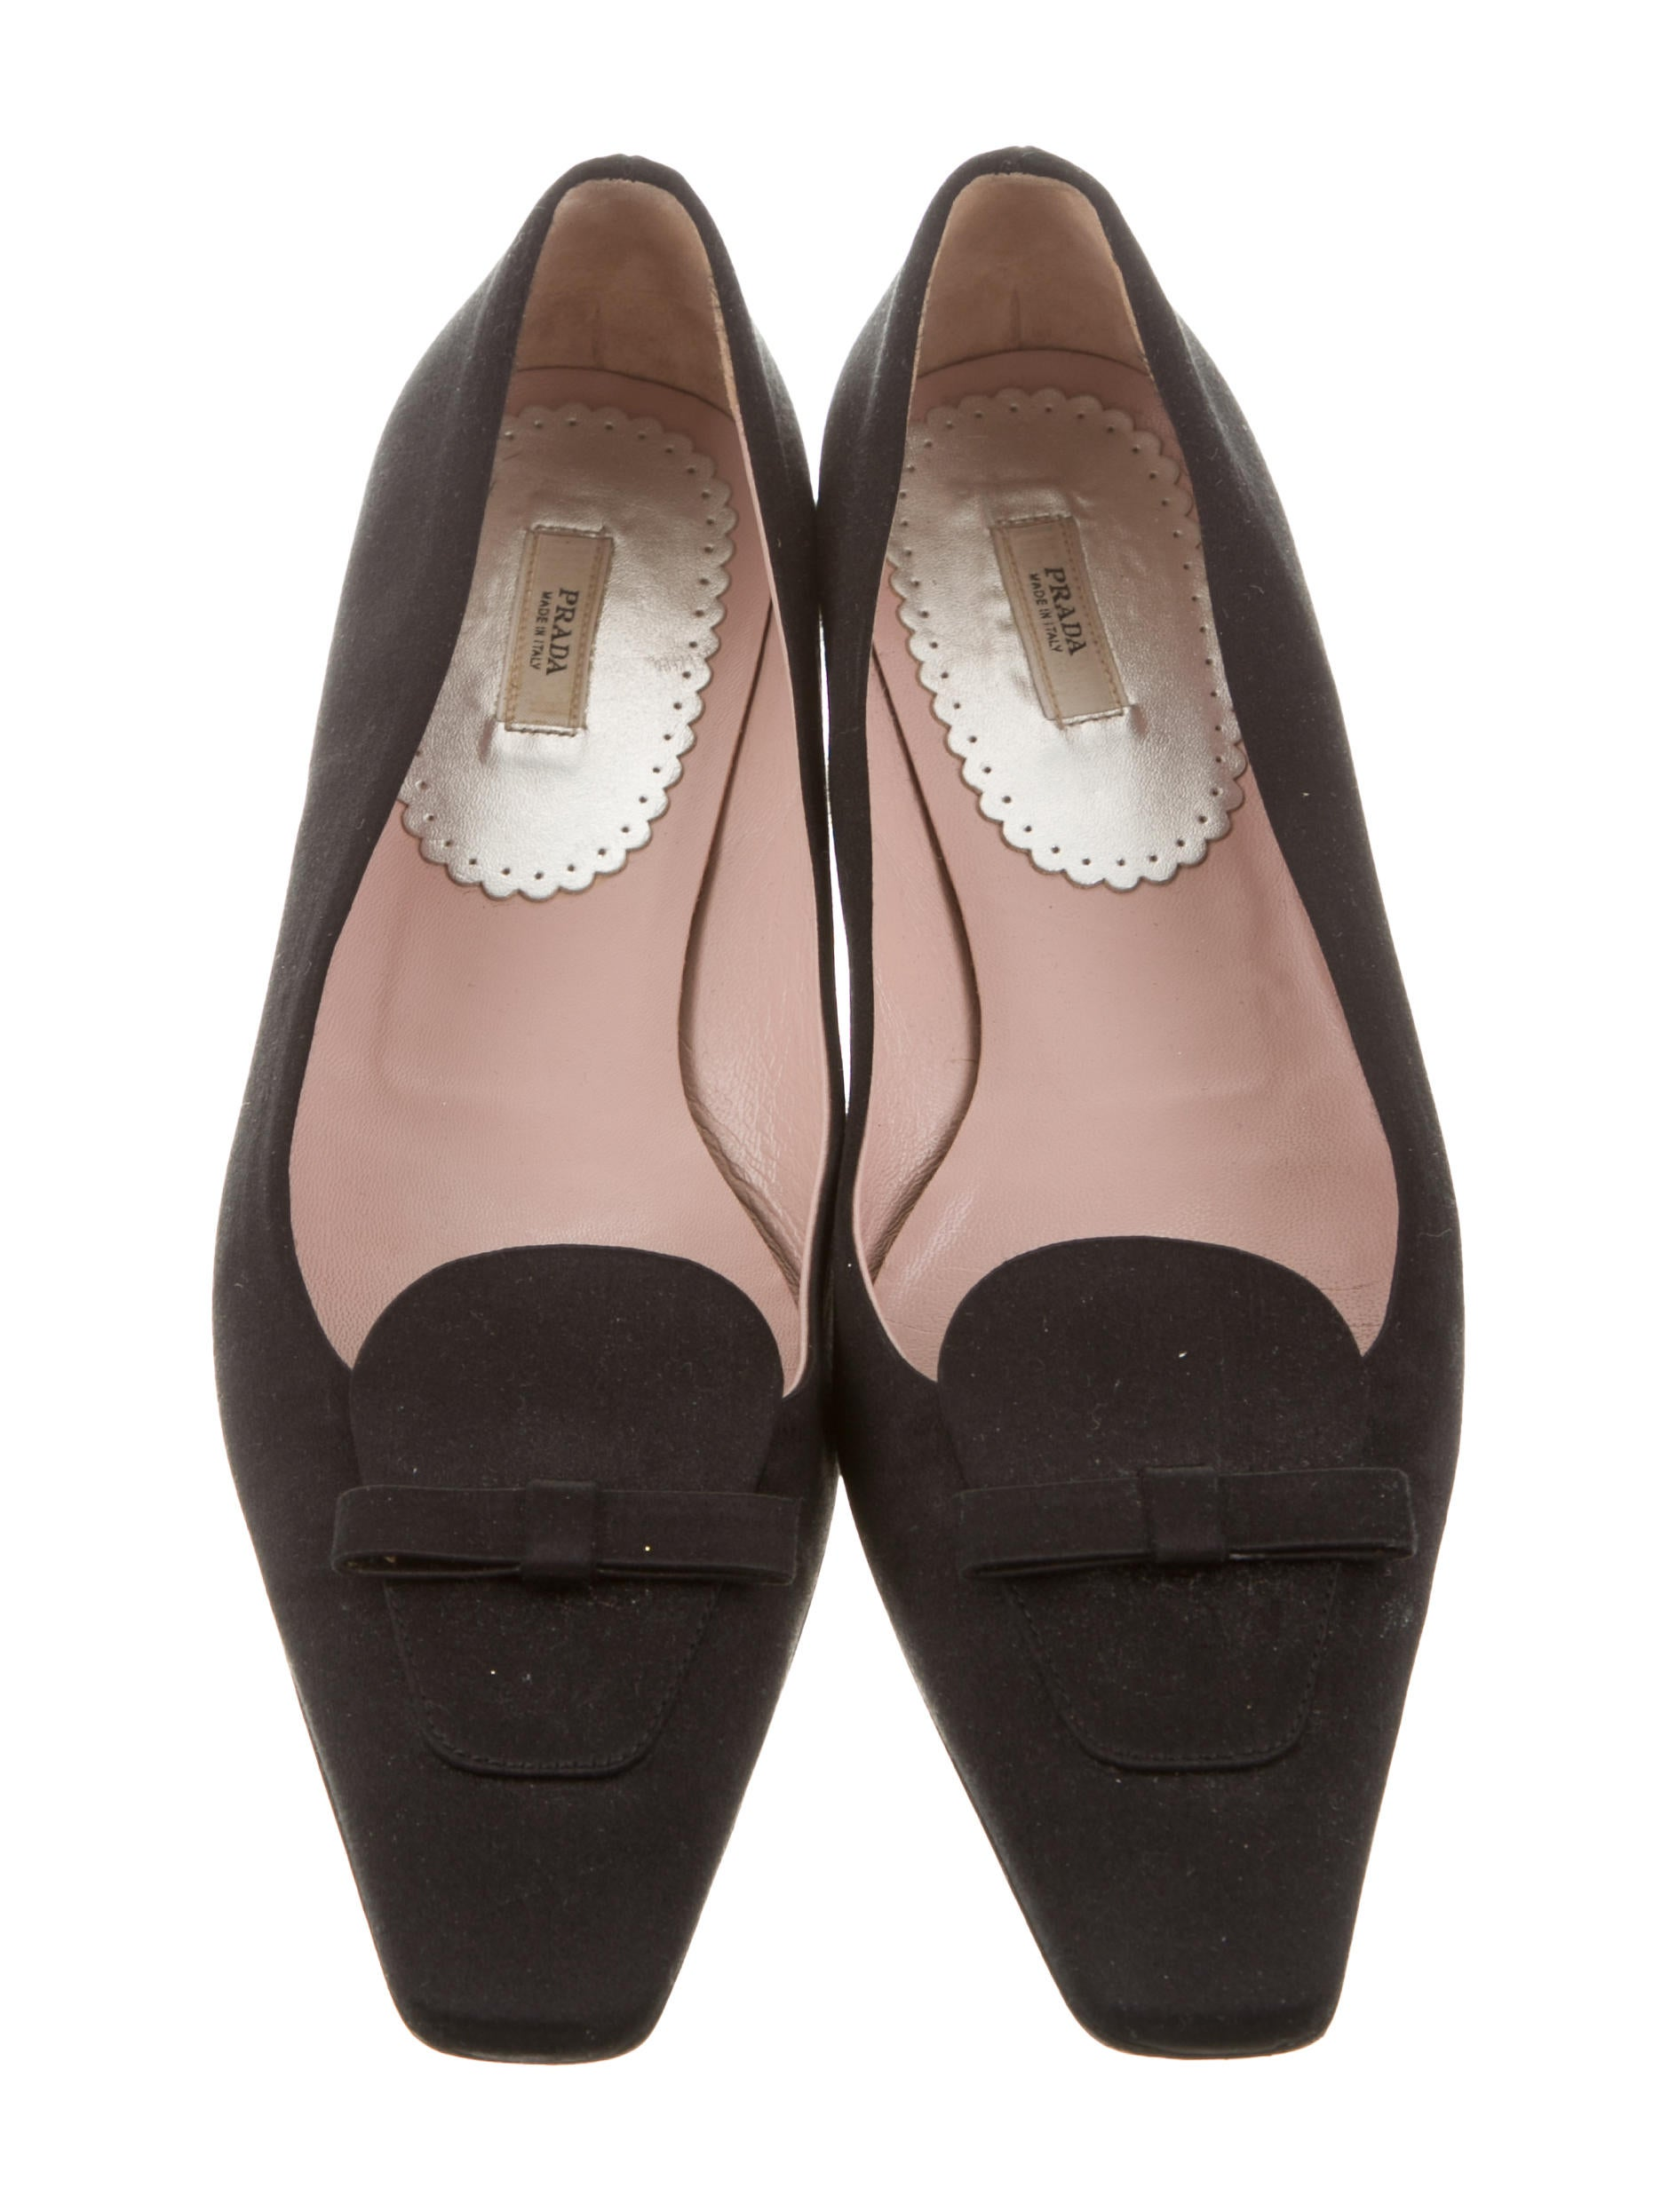 Prada Satin Square-Toe Flats for nice for sale really cheap online affordable online outlet real outlet for cheap 2nwF1CYlF